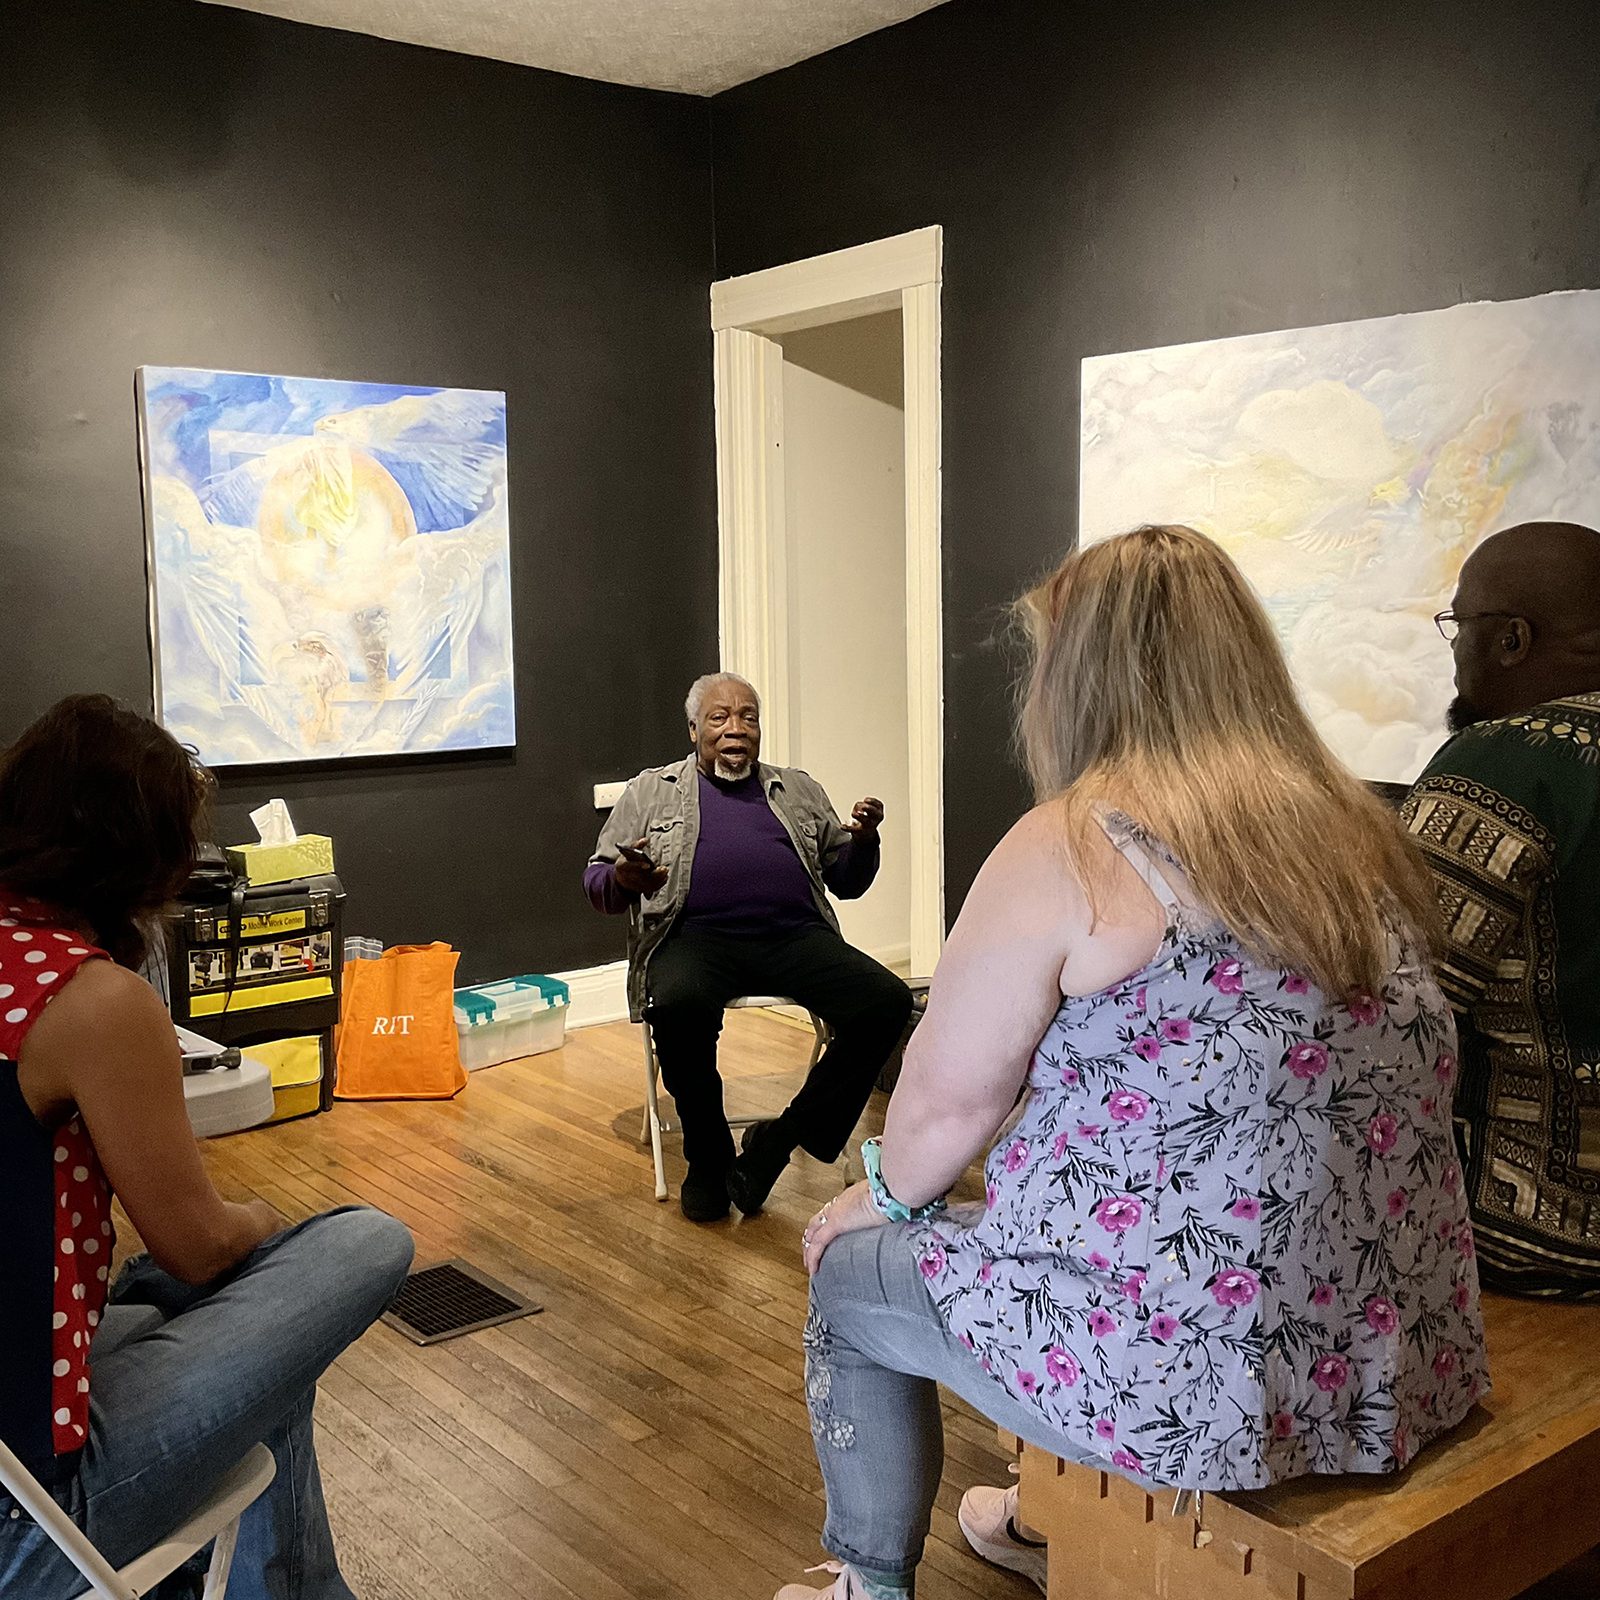 Luvon Sheppard talks with a group of people in his gallery, Joy Gallery.